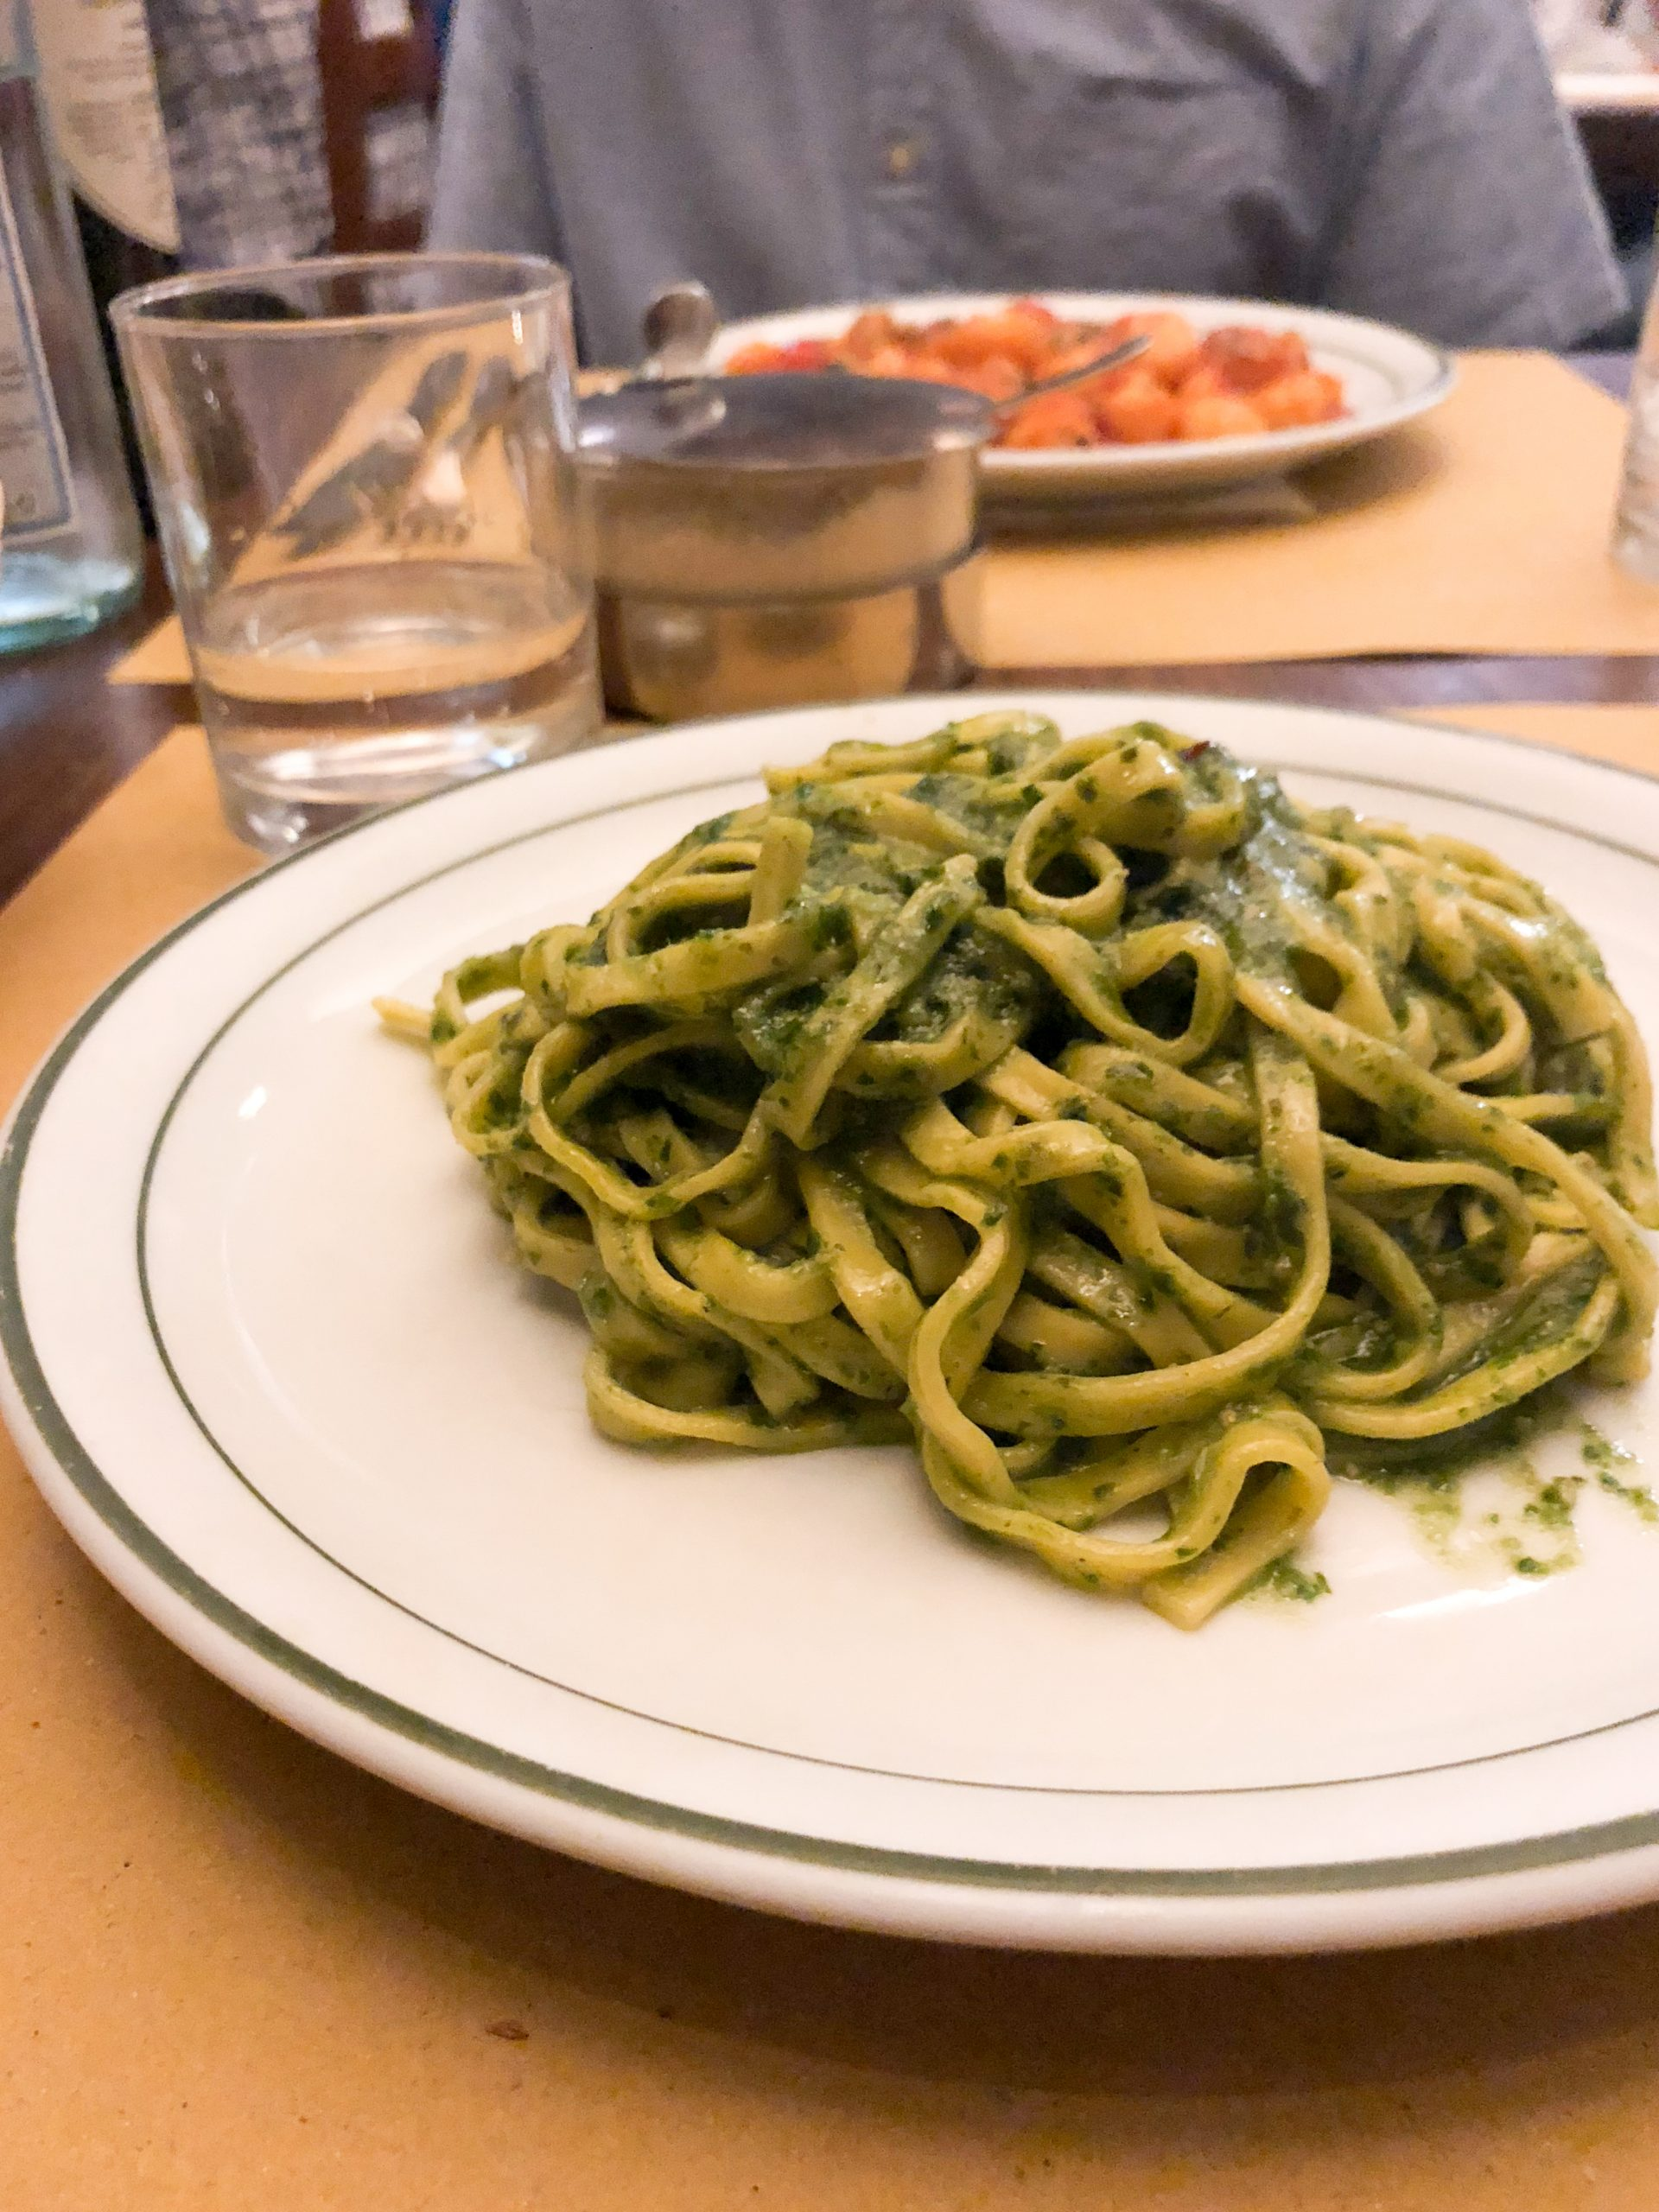 pesto with pesto genevese at Osteria del Cinghiale Bianco